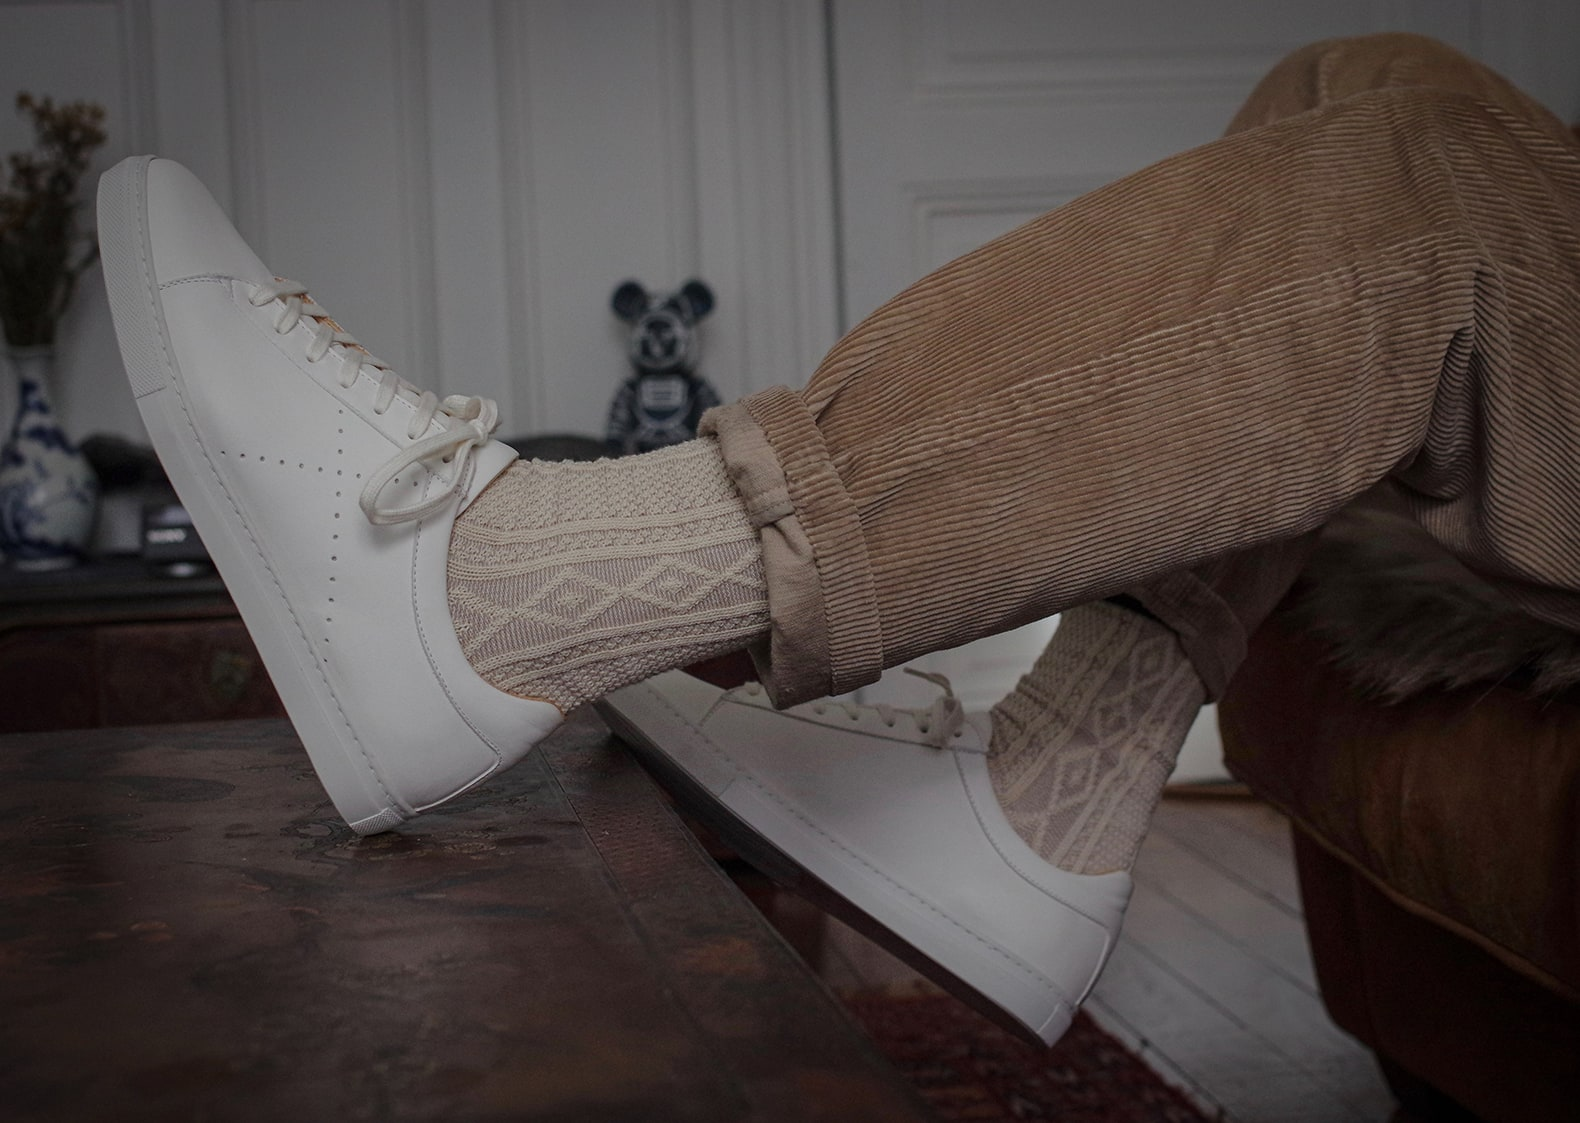 sneakers l'exception et chaussettes royalties paris kirk